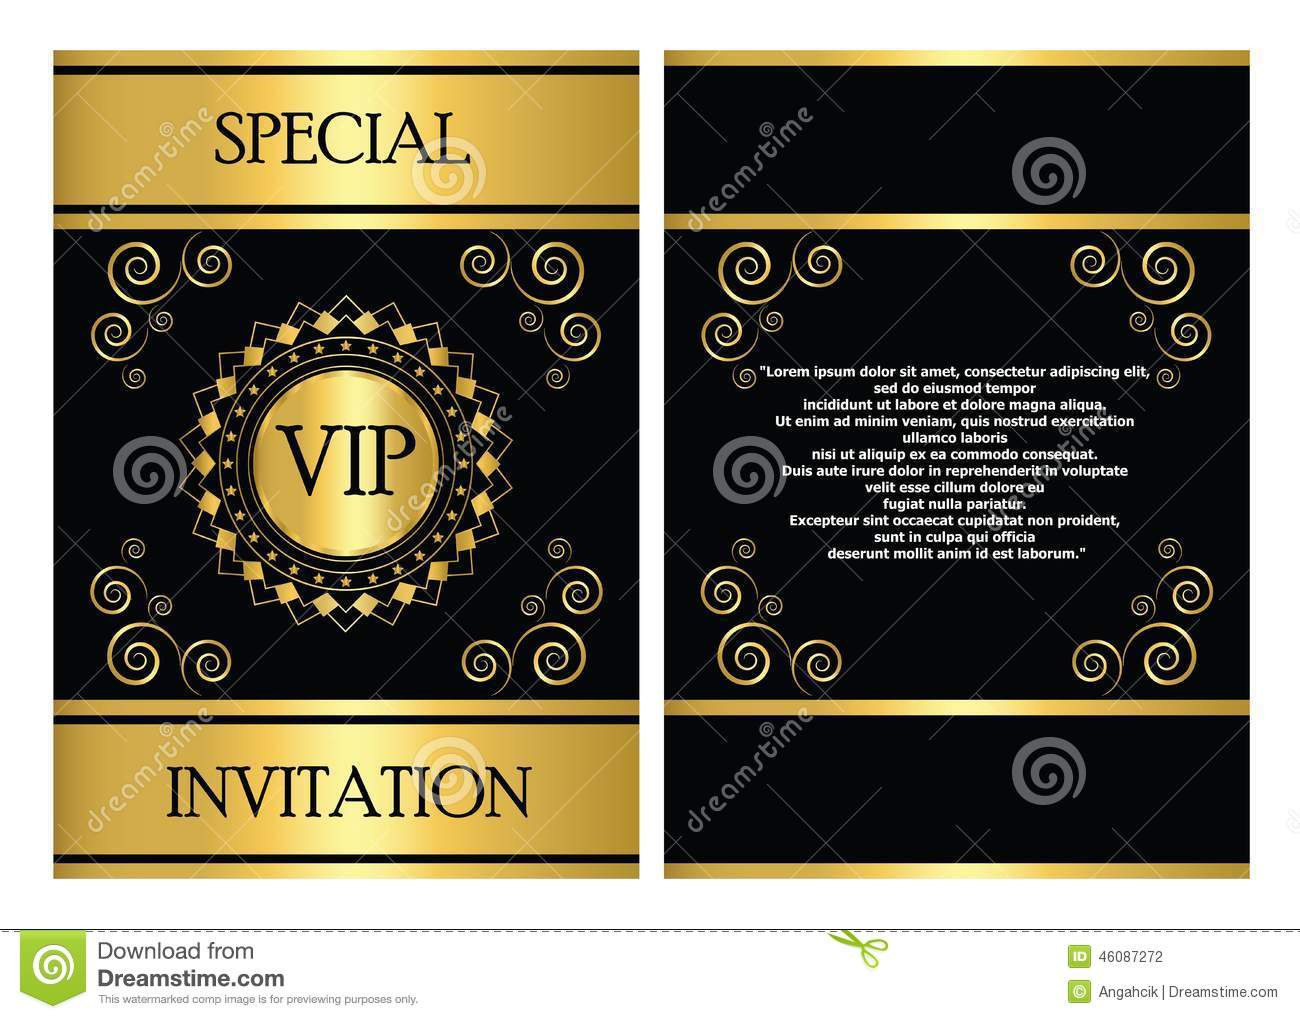 VIP Invitation Card Template Stock Vector - Illustration of ...